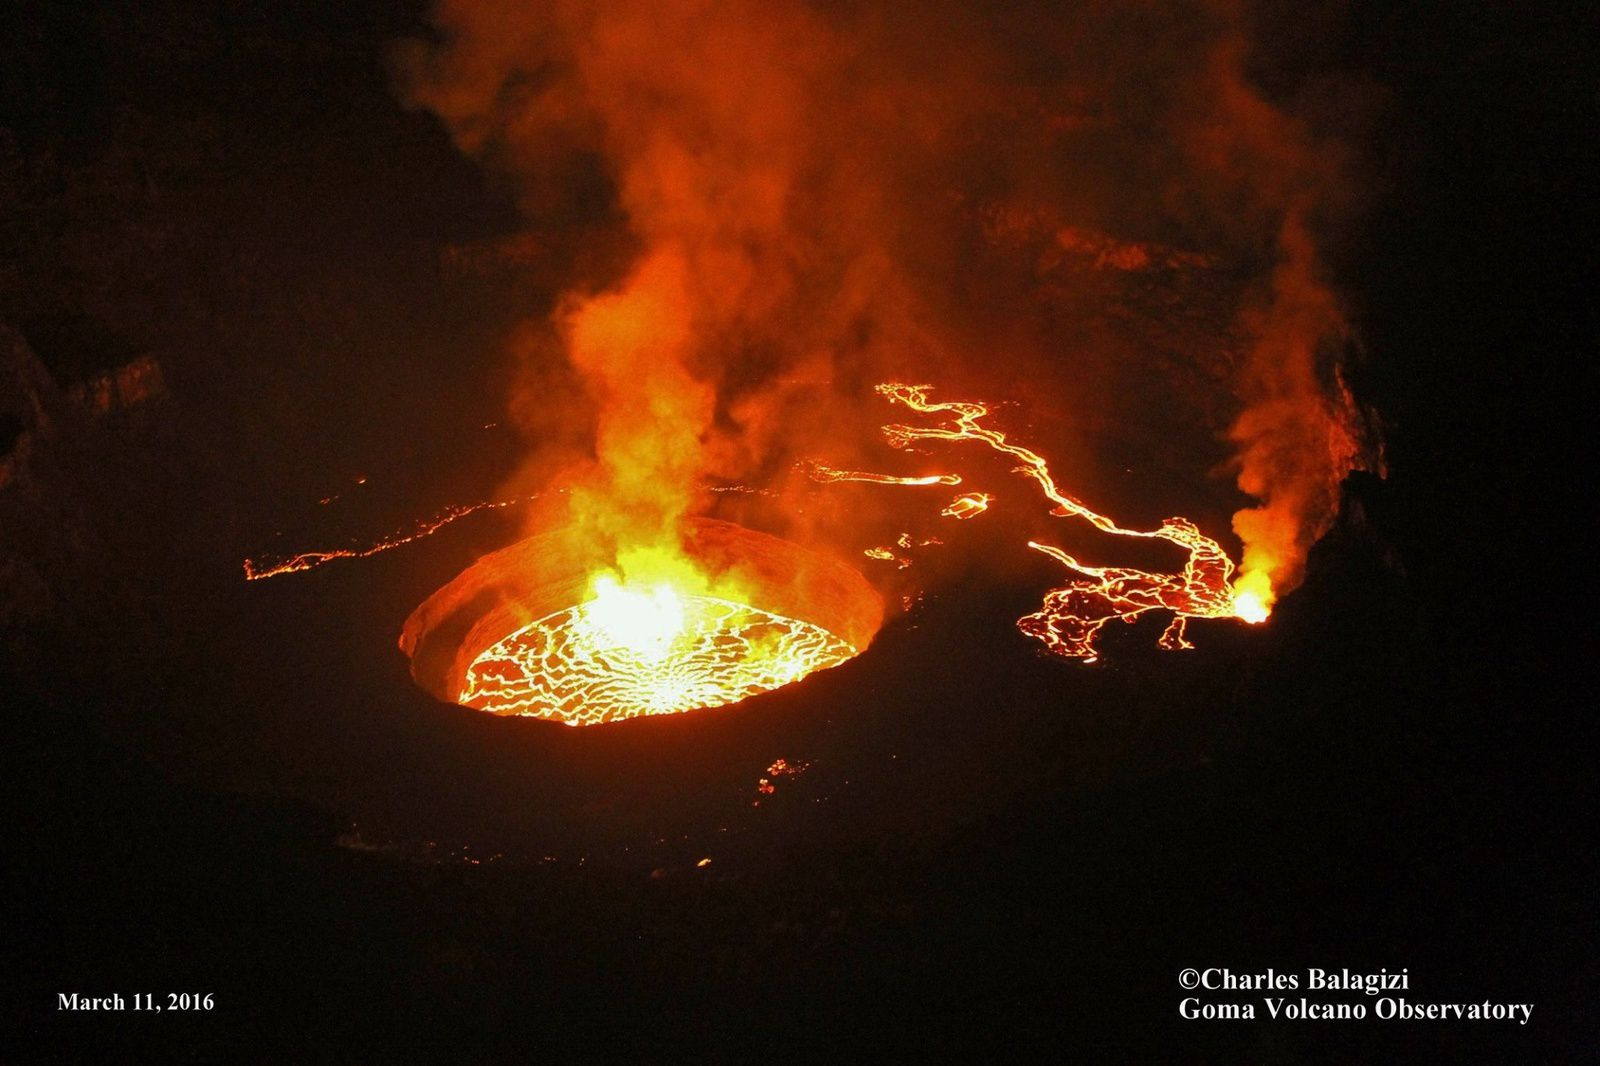 Nyiragongo - two active wells on 11/03/2016 - and lava flows of the secondary wells on the 3rd platform - photo Charles Balagizi / OVG